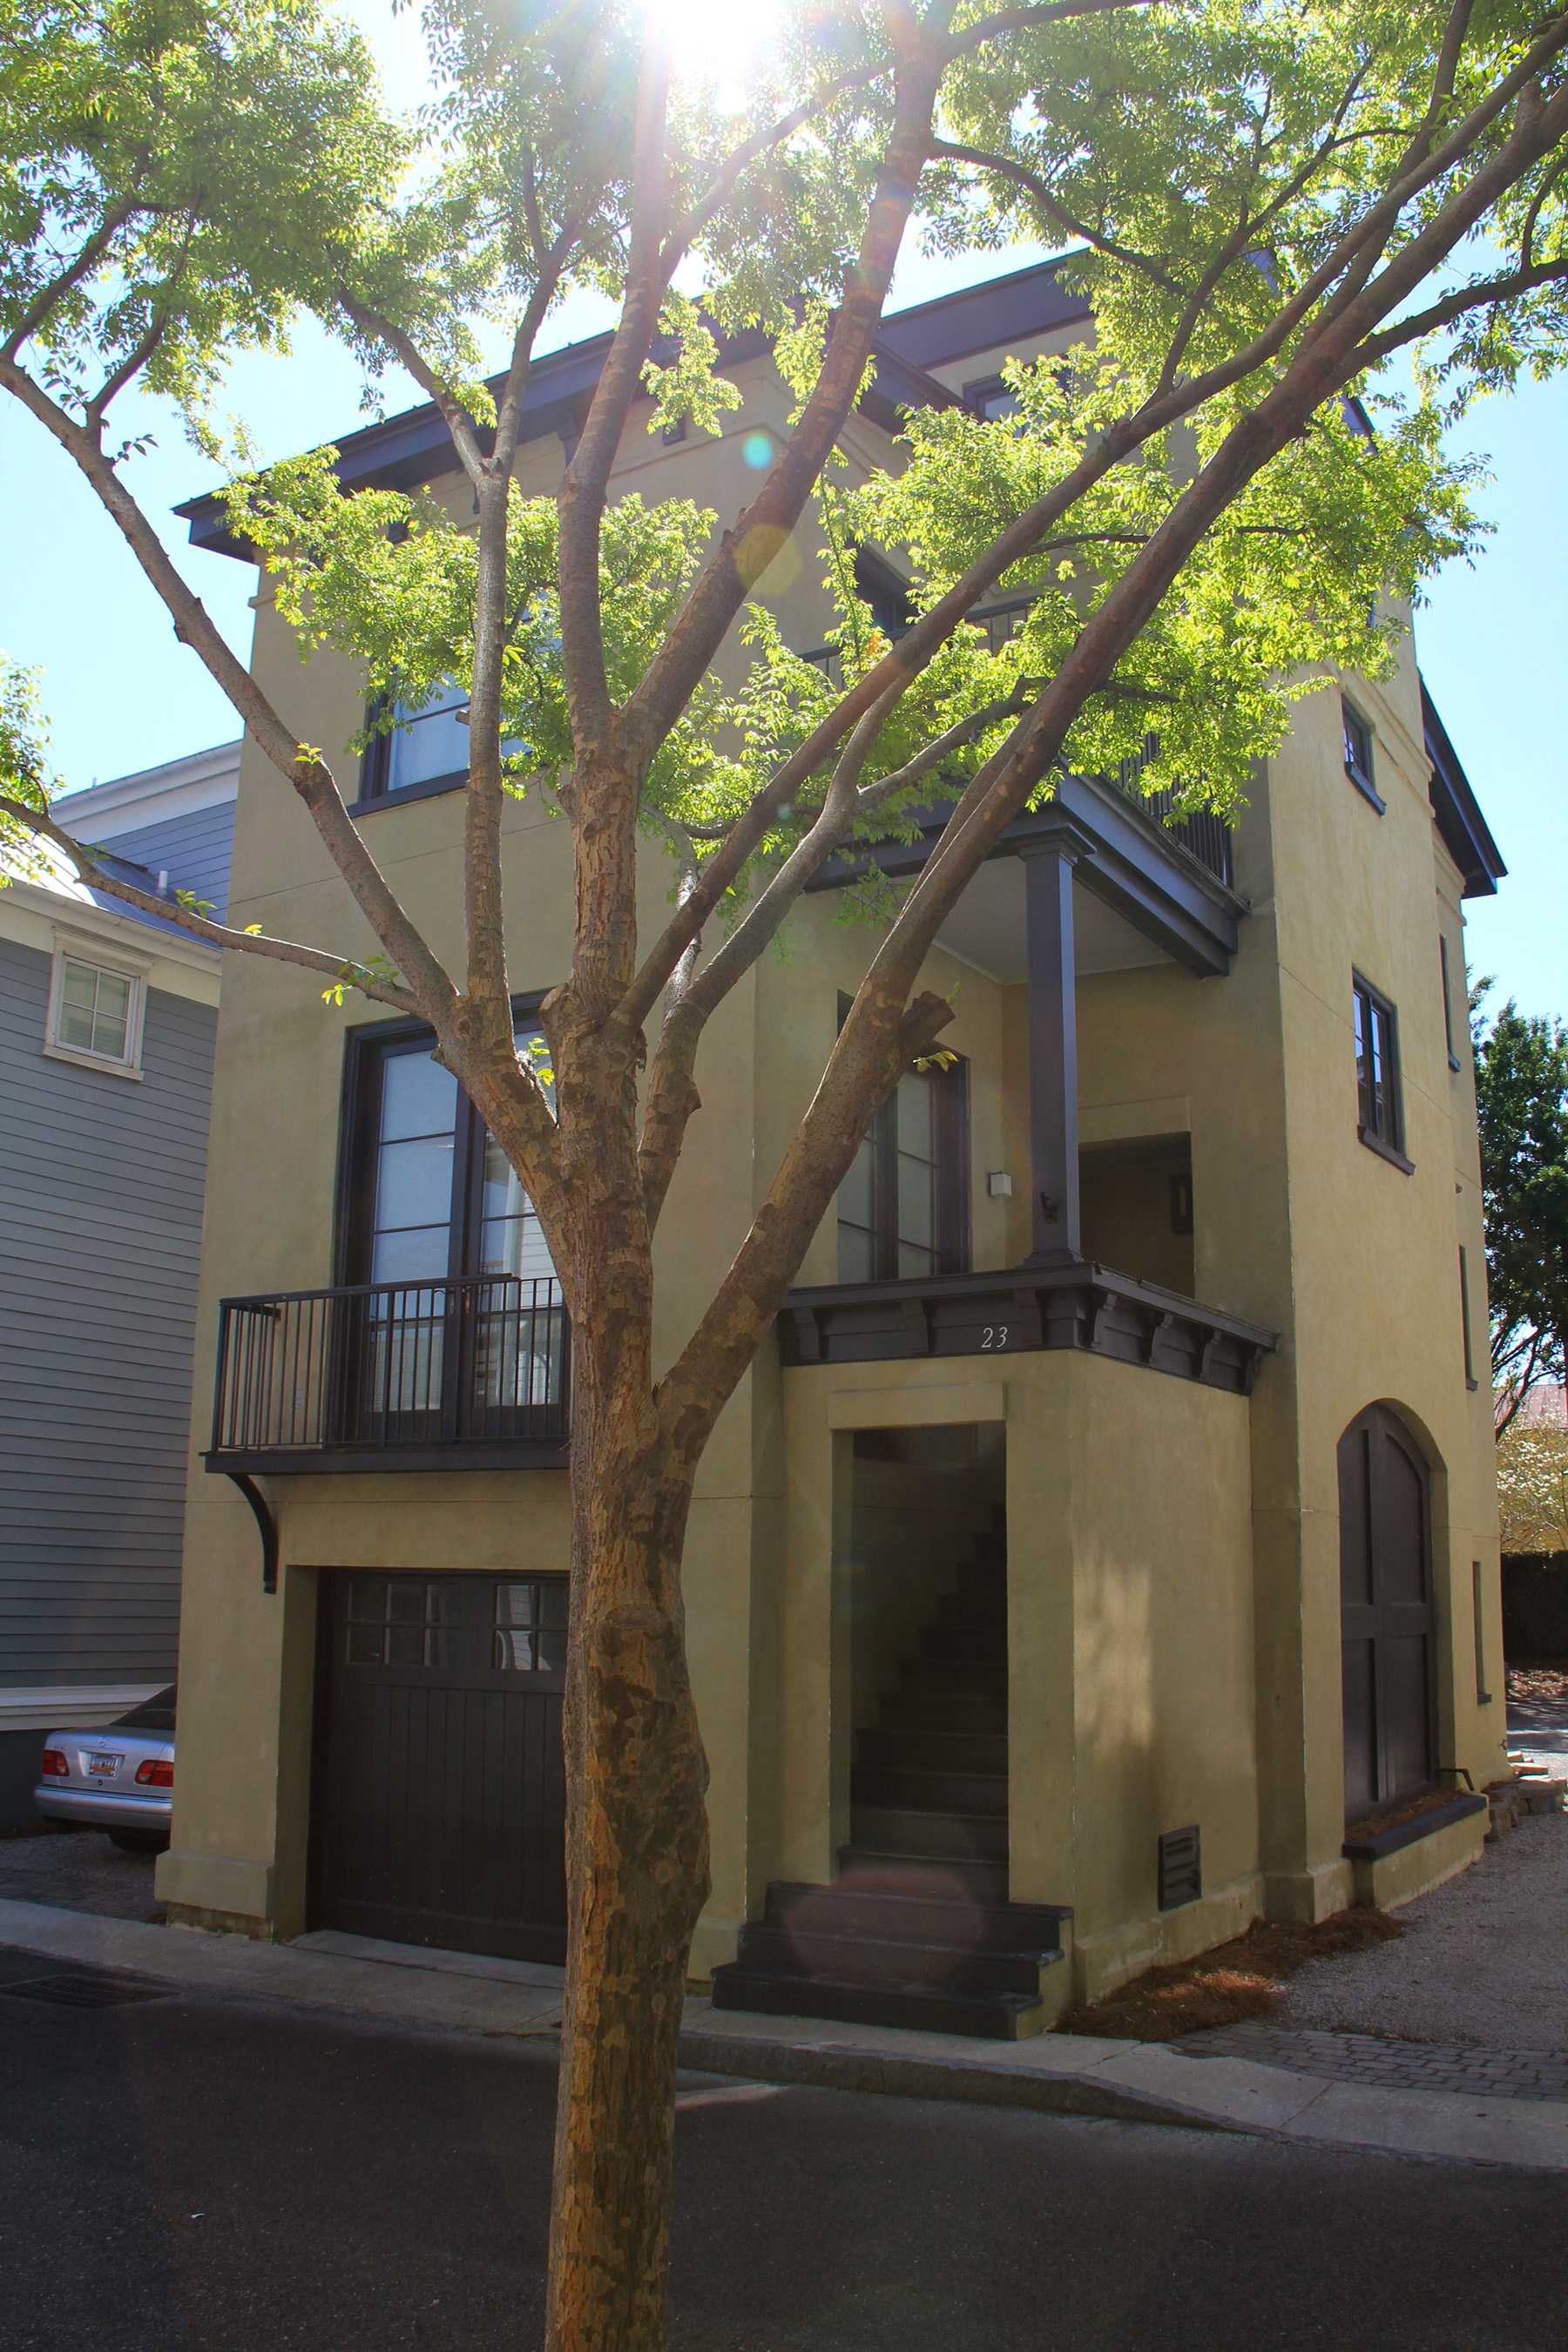 Townhouse for Sale at 23 Corinne Street 23 Corinne Street Unit 4 Radcliffeborough, Charleston, South Carolina, 29403 United States